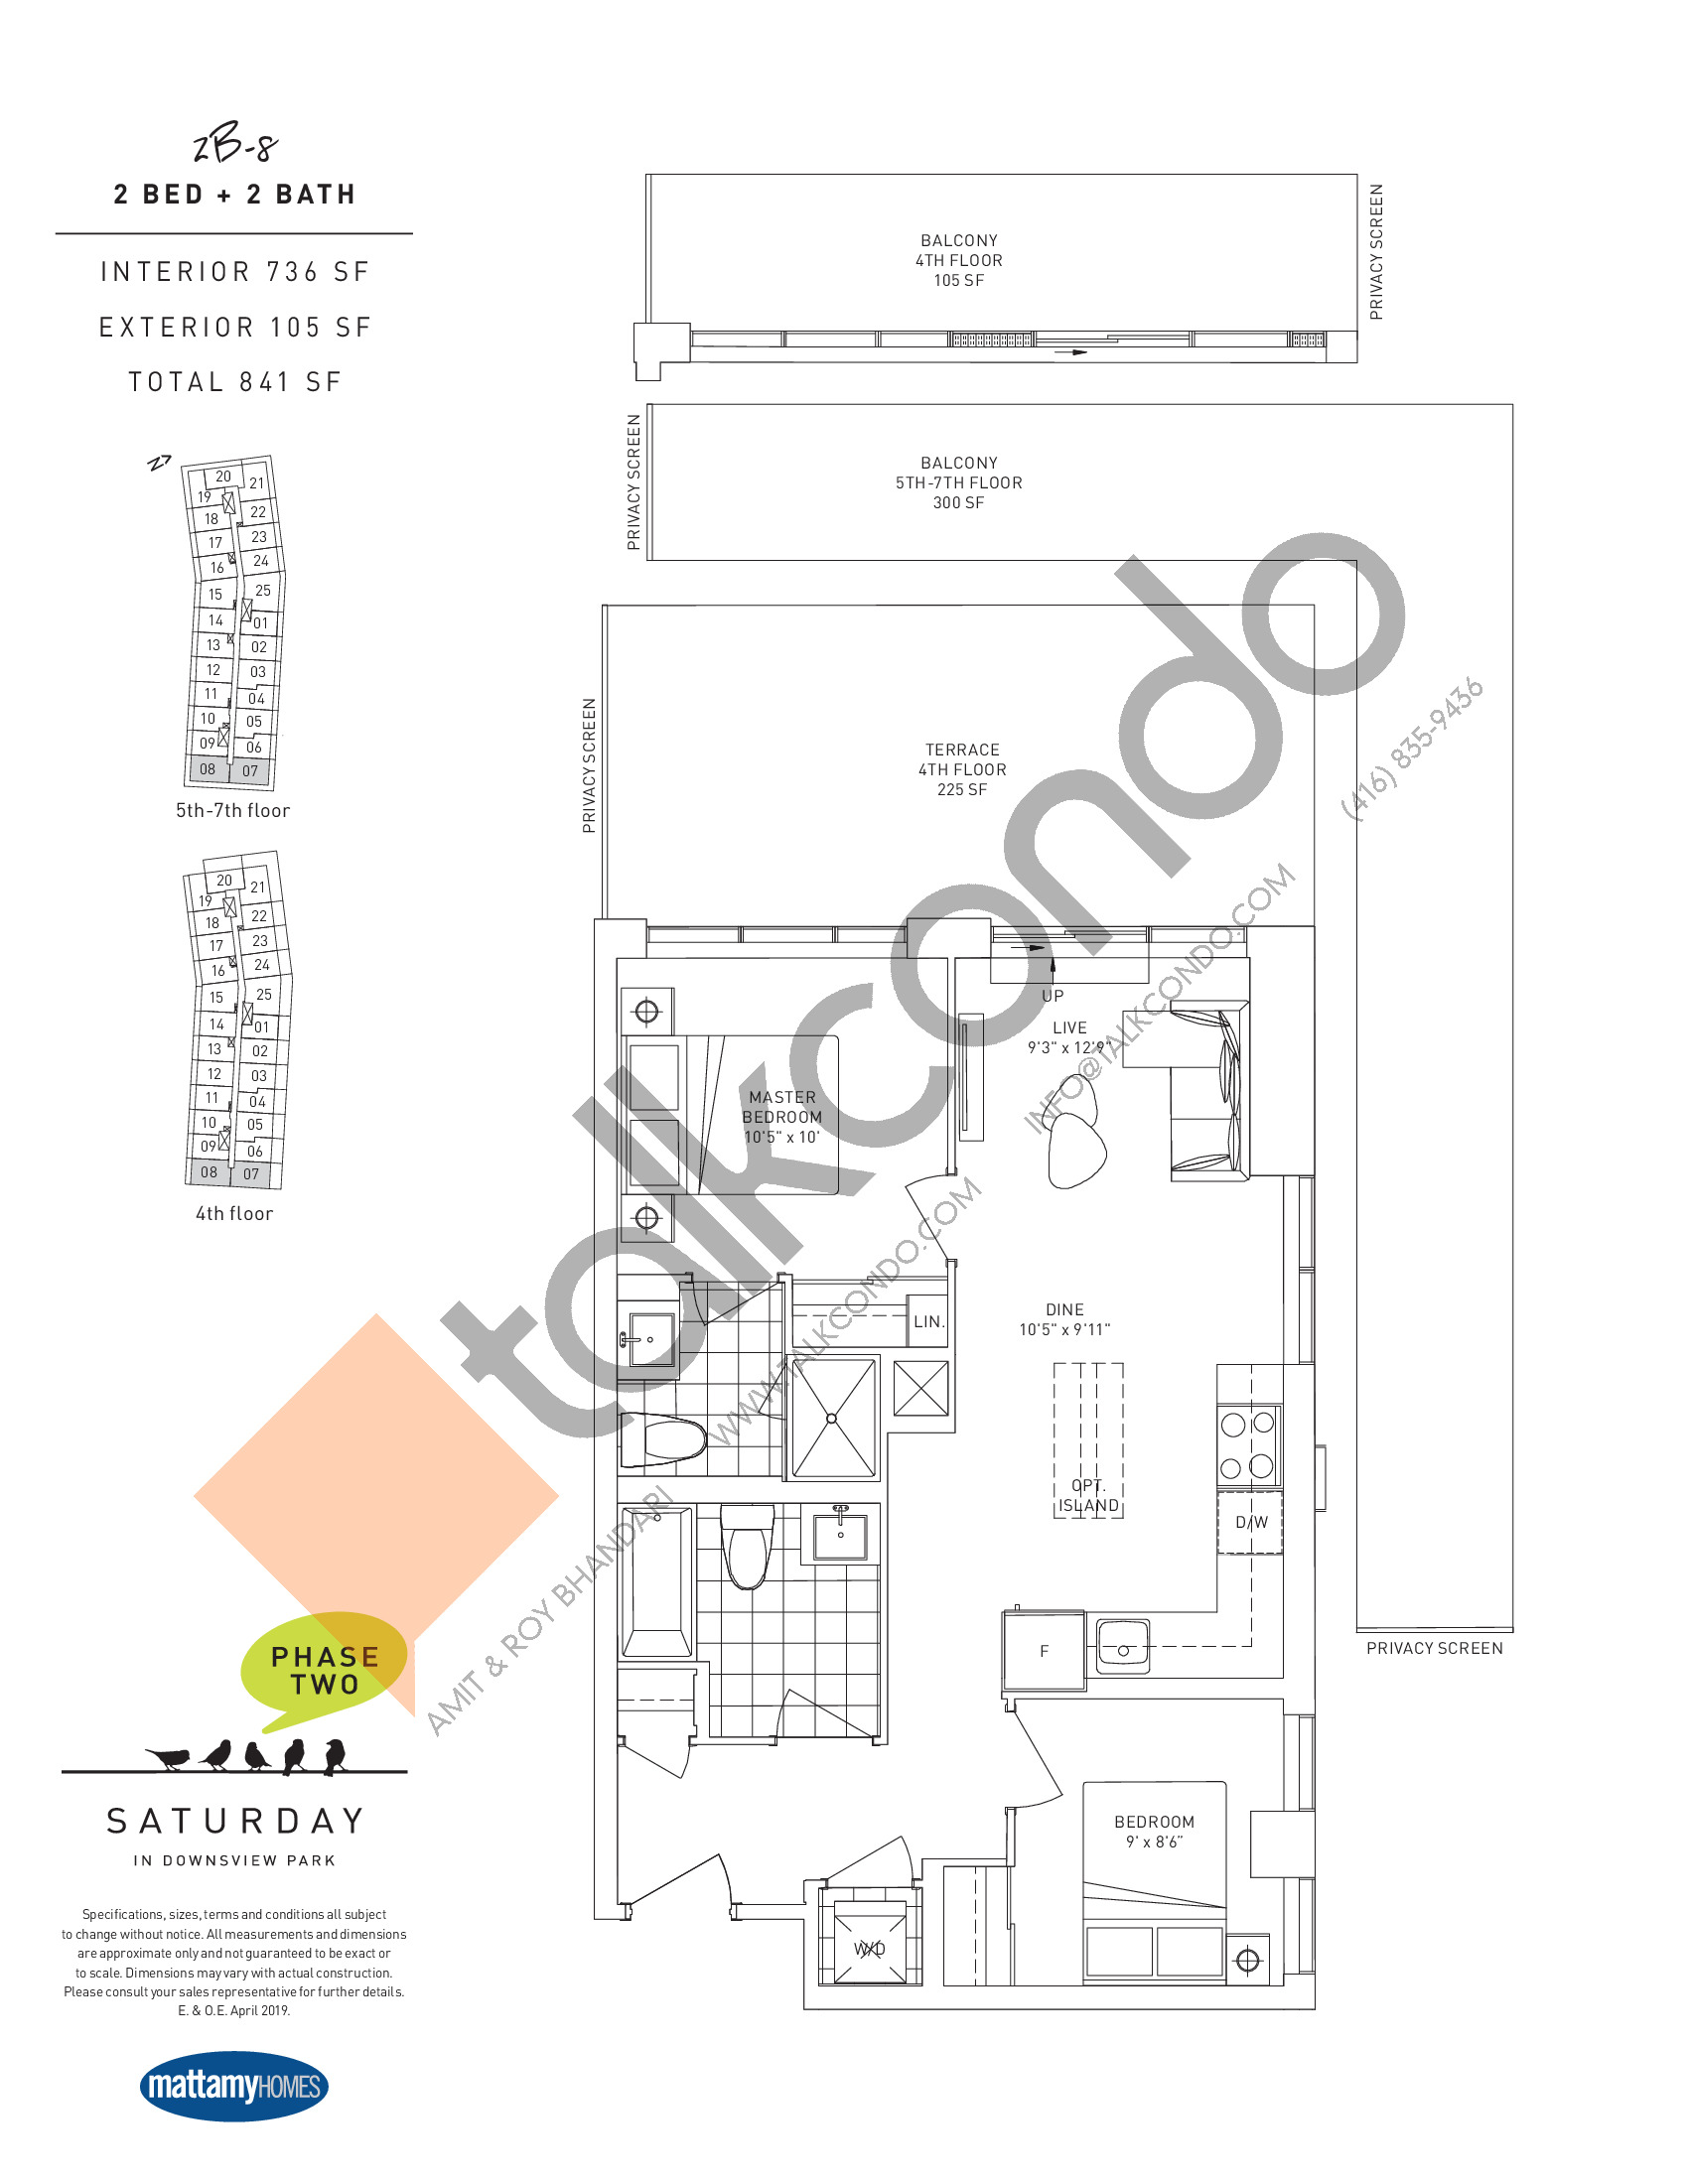 2B-8 Floor Plan at Saturday in Downsview Park Phase 2 Condos - 736 sq.ft